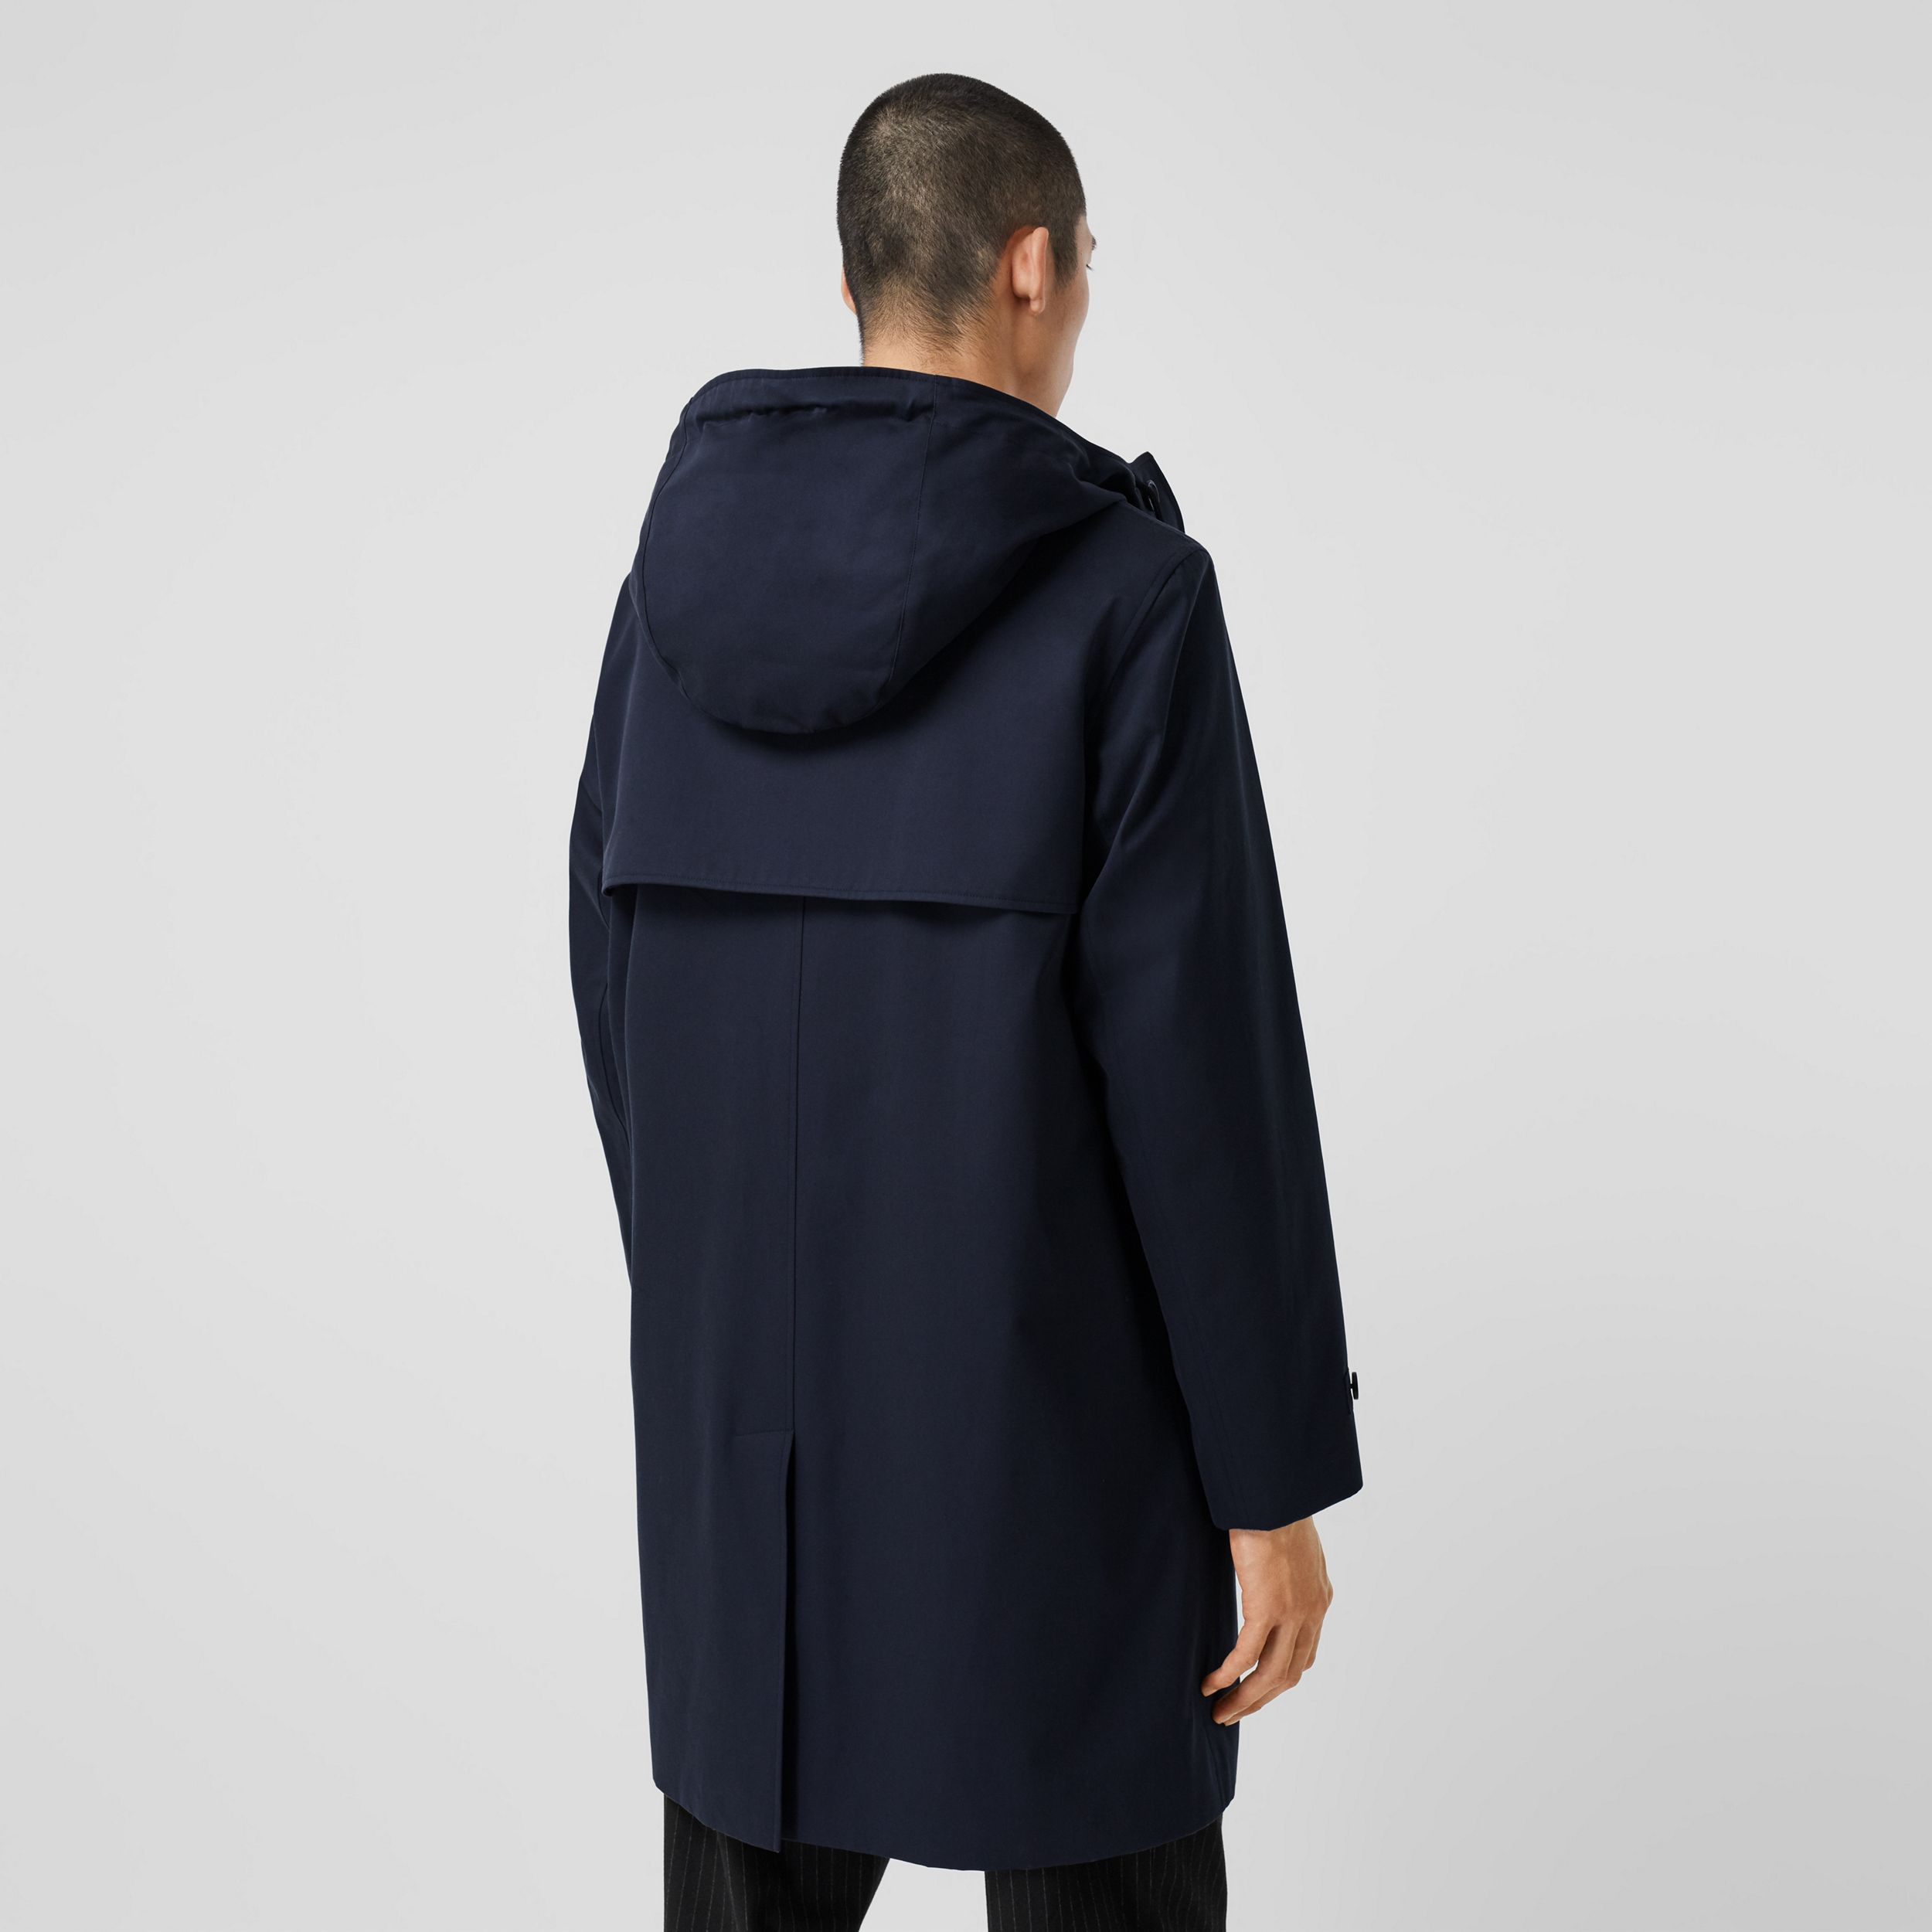 Cotton Gabardine Hooded Coat in Midnight - Men | Burberry - 3